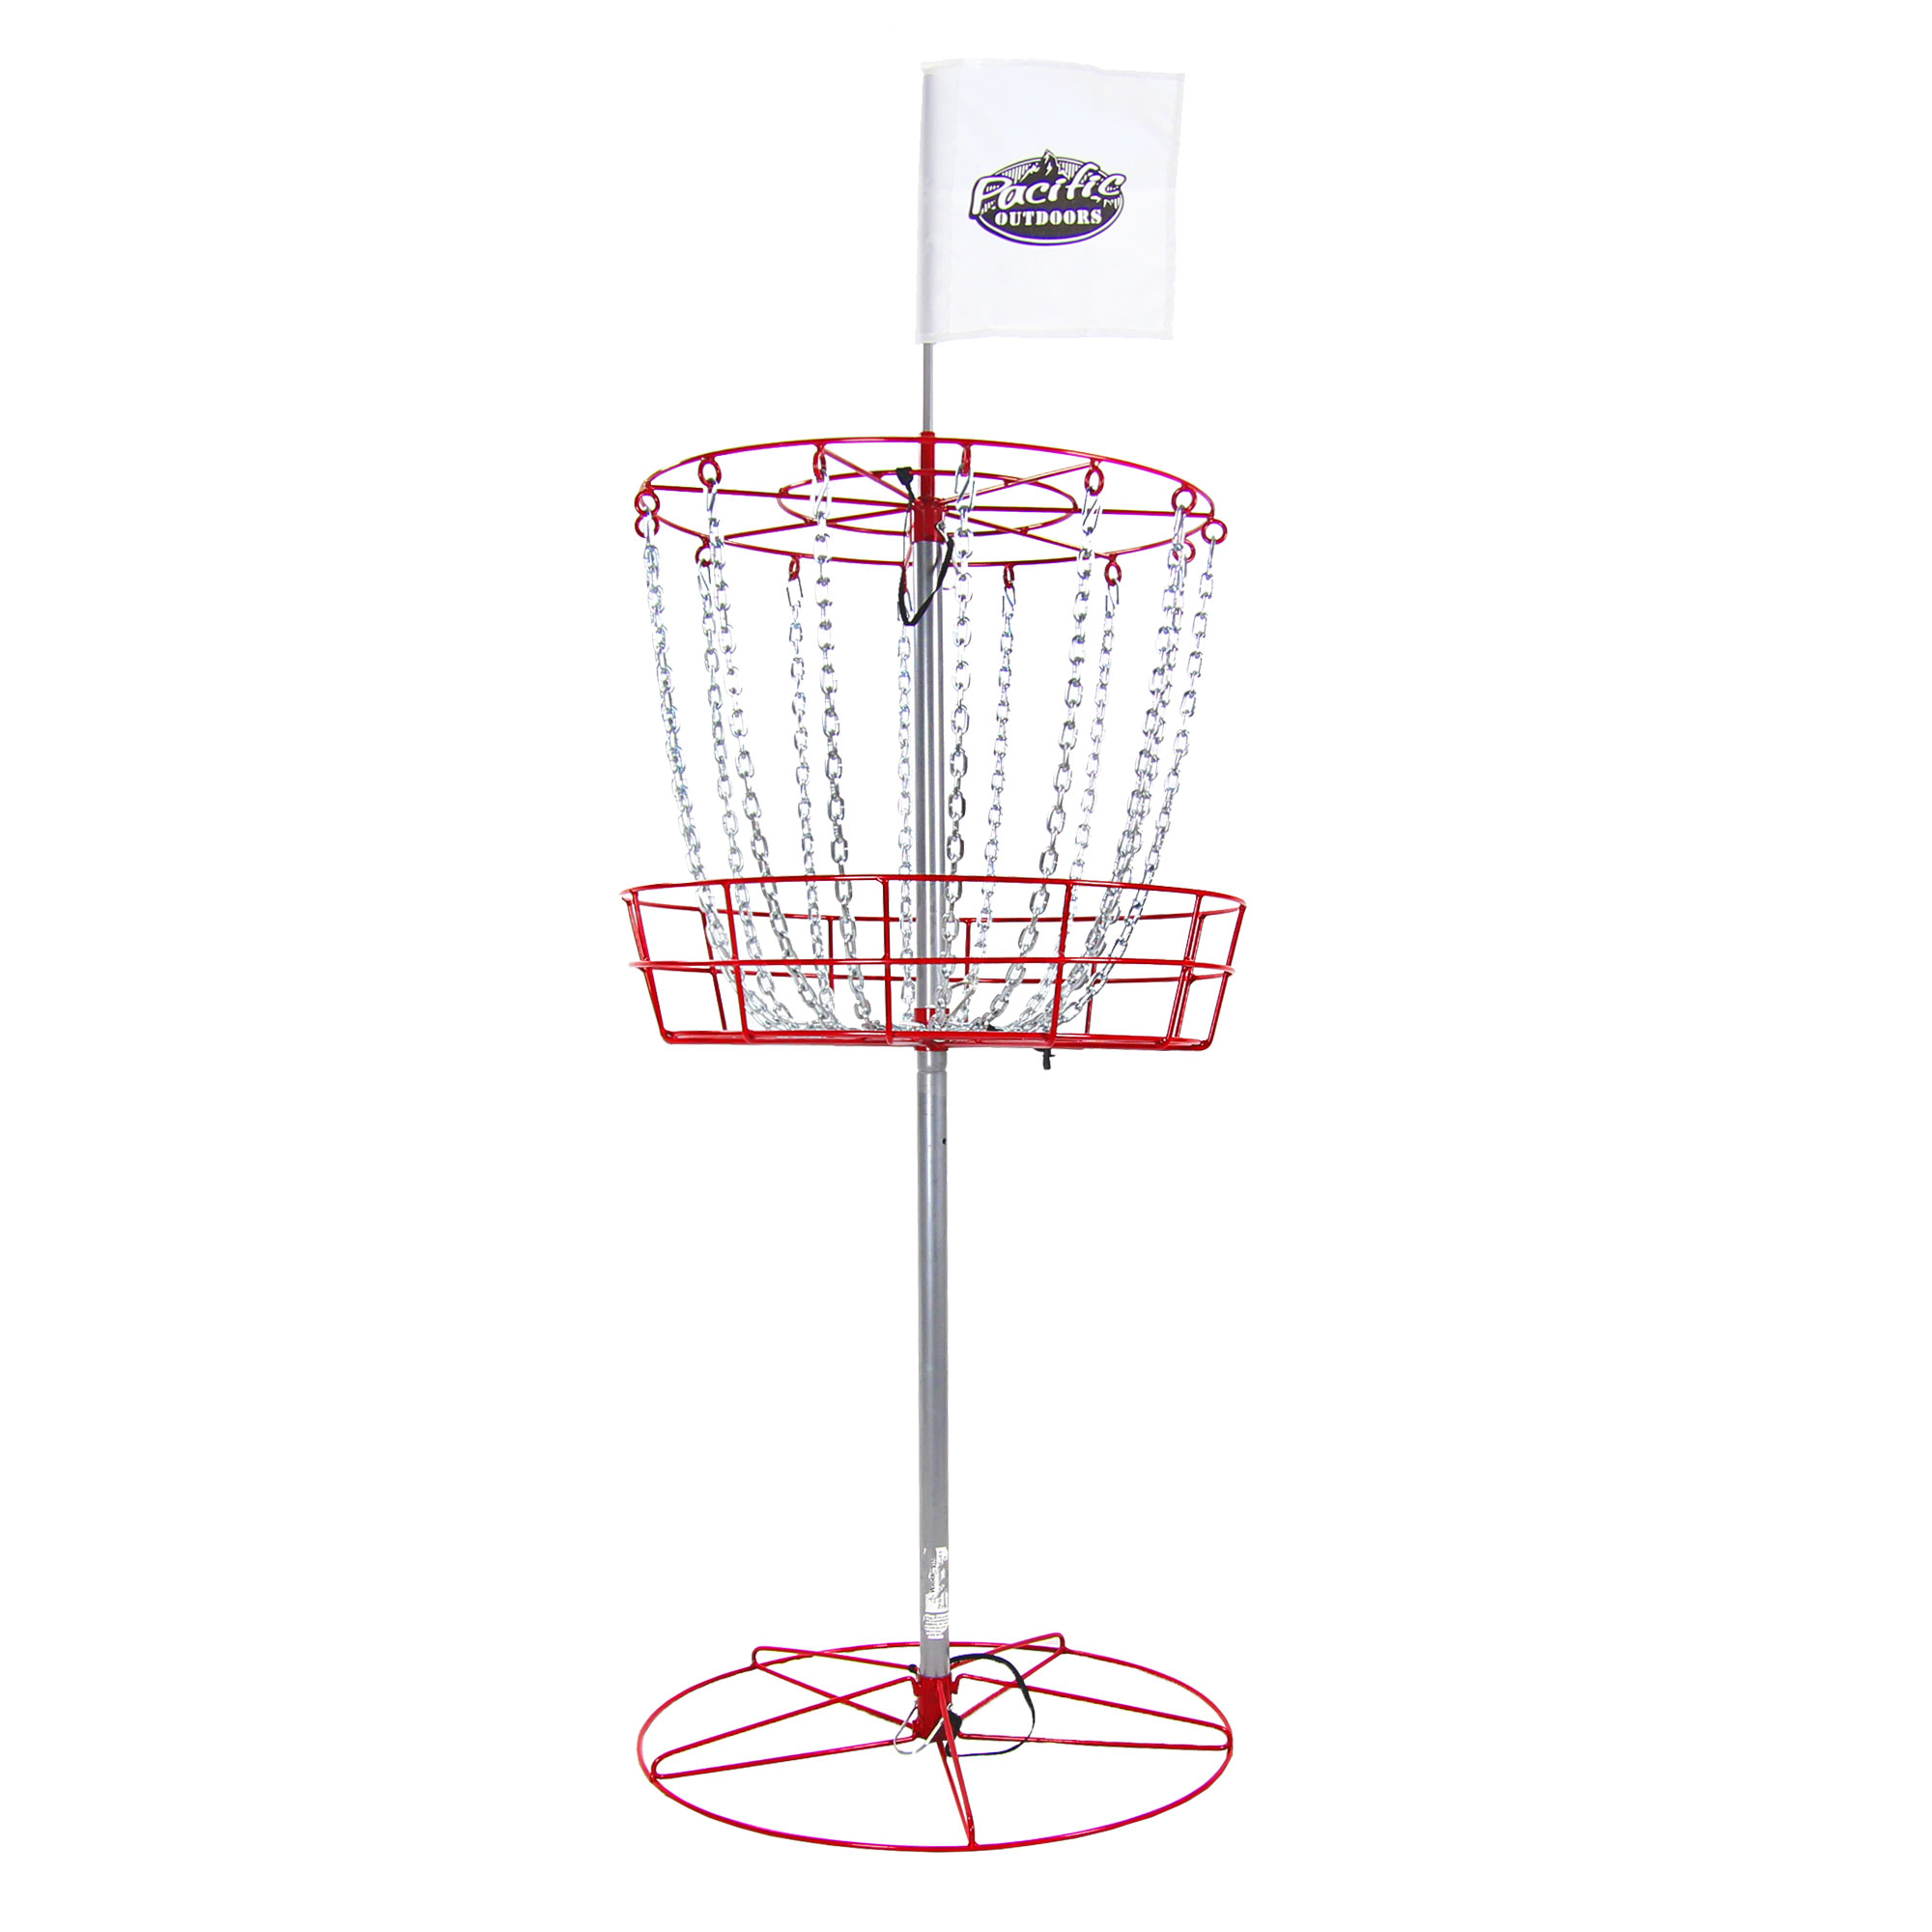 InSTEP Disc Golf Basket Target Goal & 3 Discs DG200 by